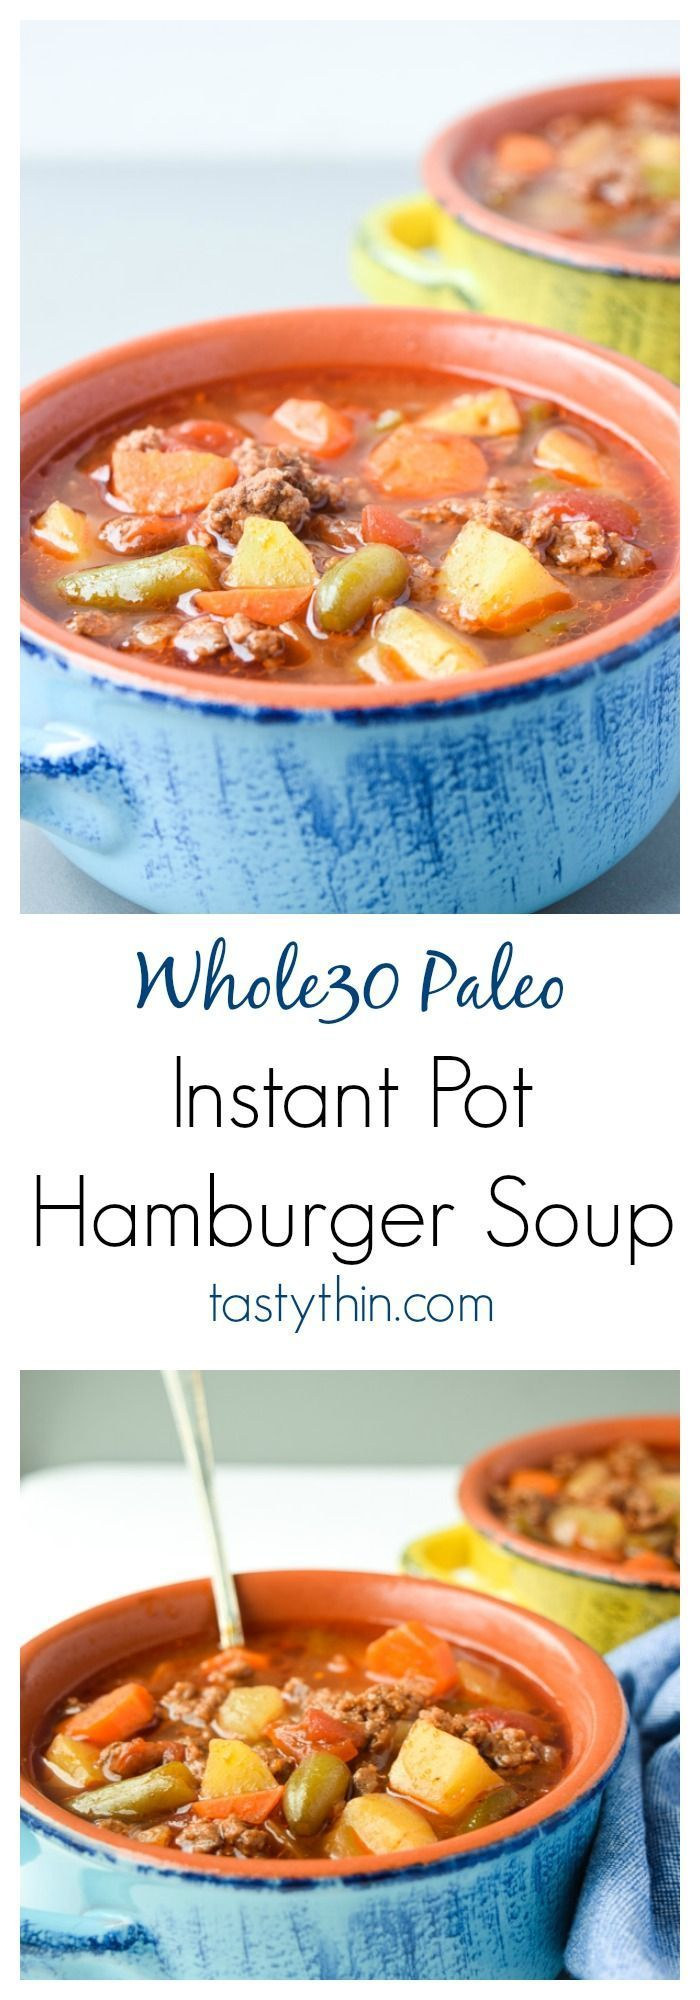 Instant Pot Hamburger Soup (Whole30 Paleo) - aka Poor Man's Soup! Hearty, healthy, and totally budget friendly. Your family will love this soup! | http://tastythin.com